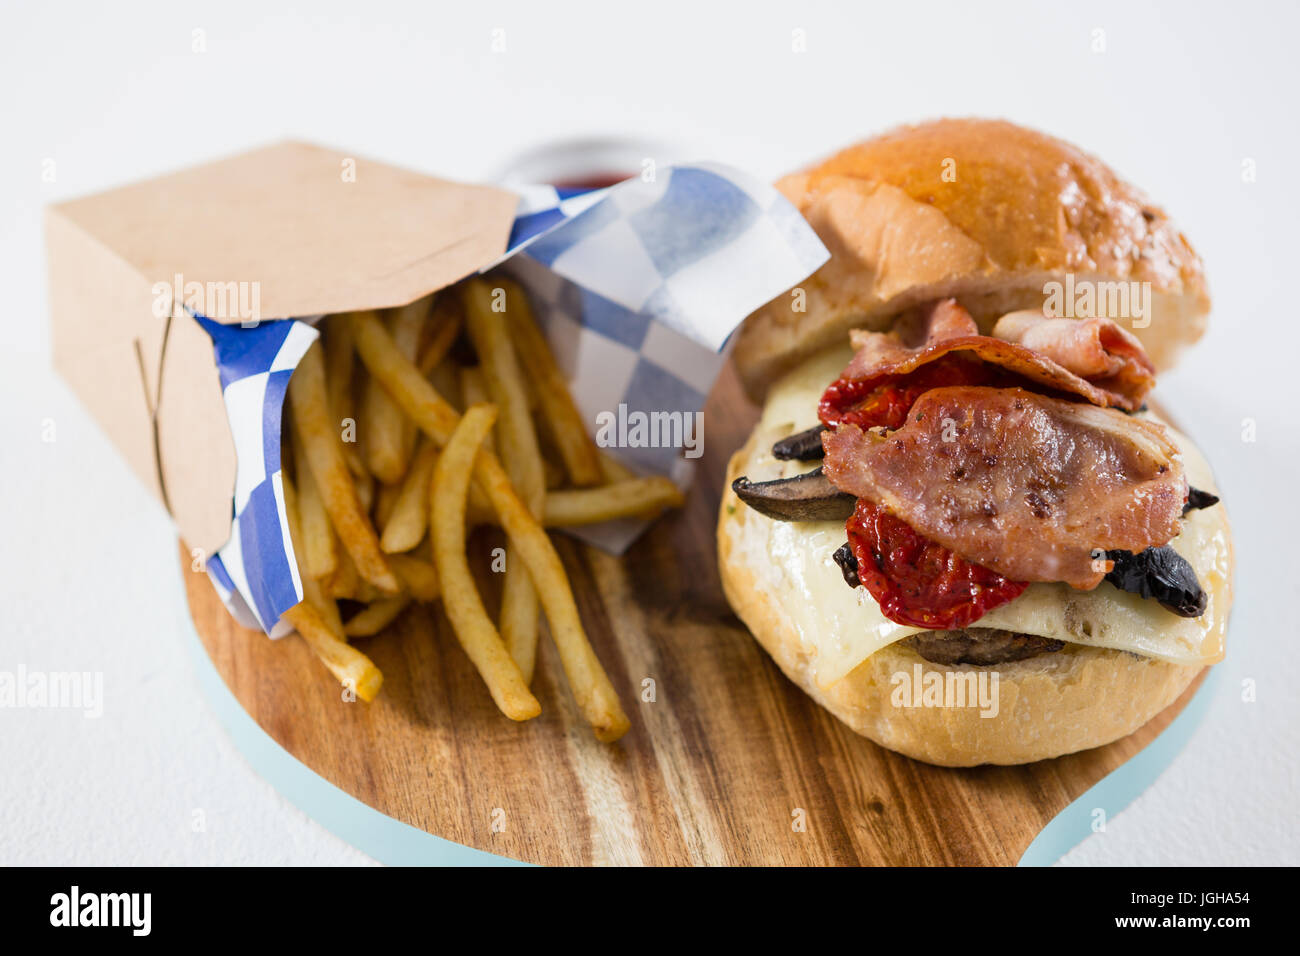 High angel view burger and French fries on cutting board - Stock Image